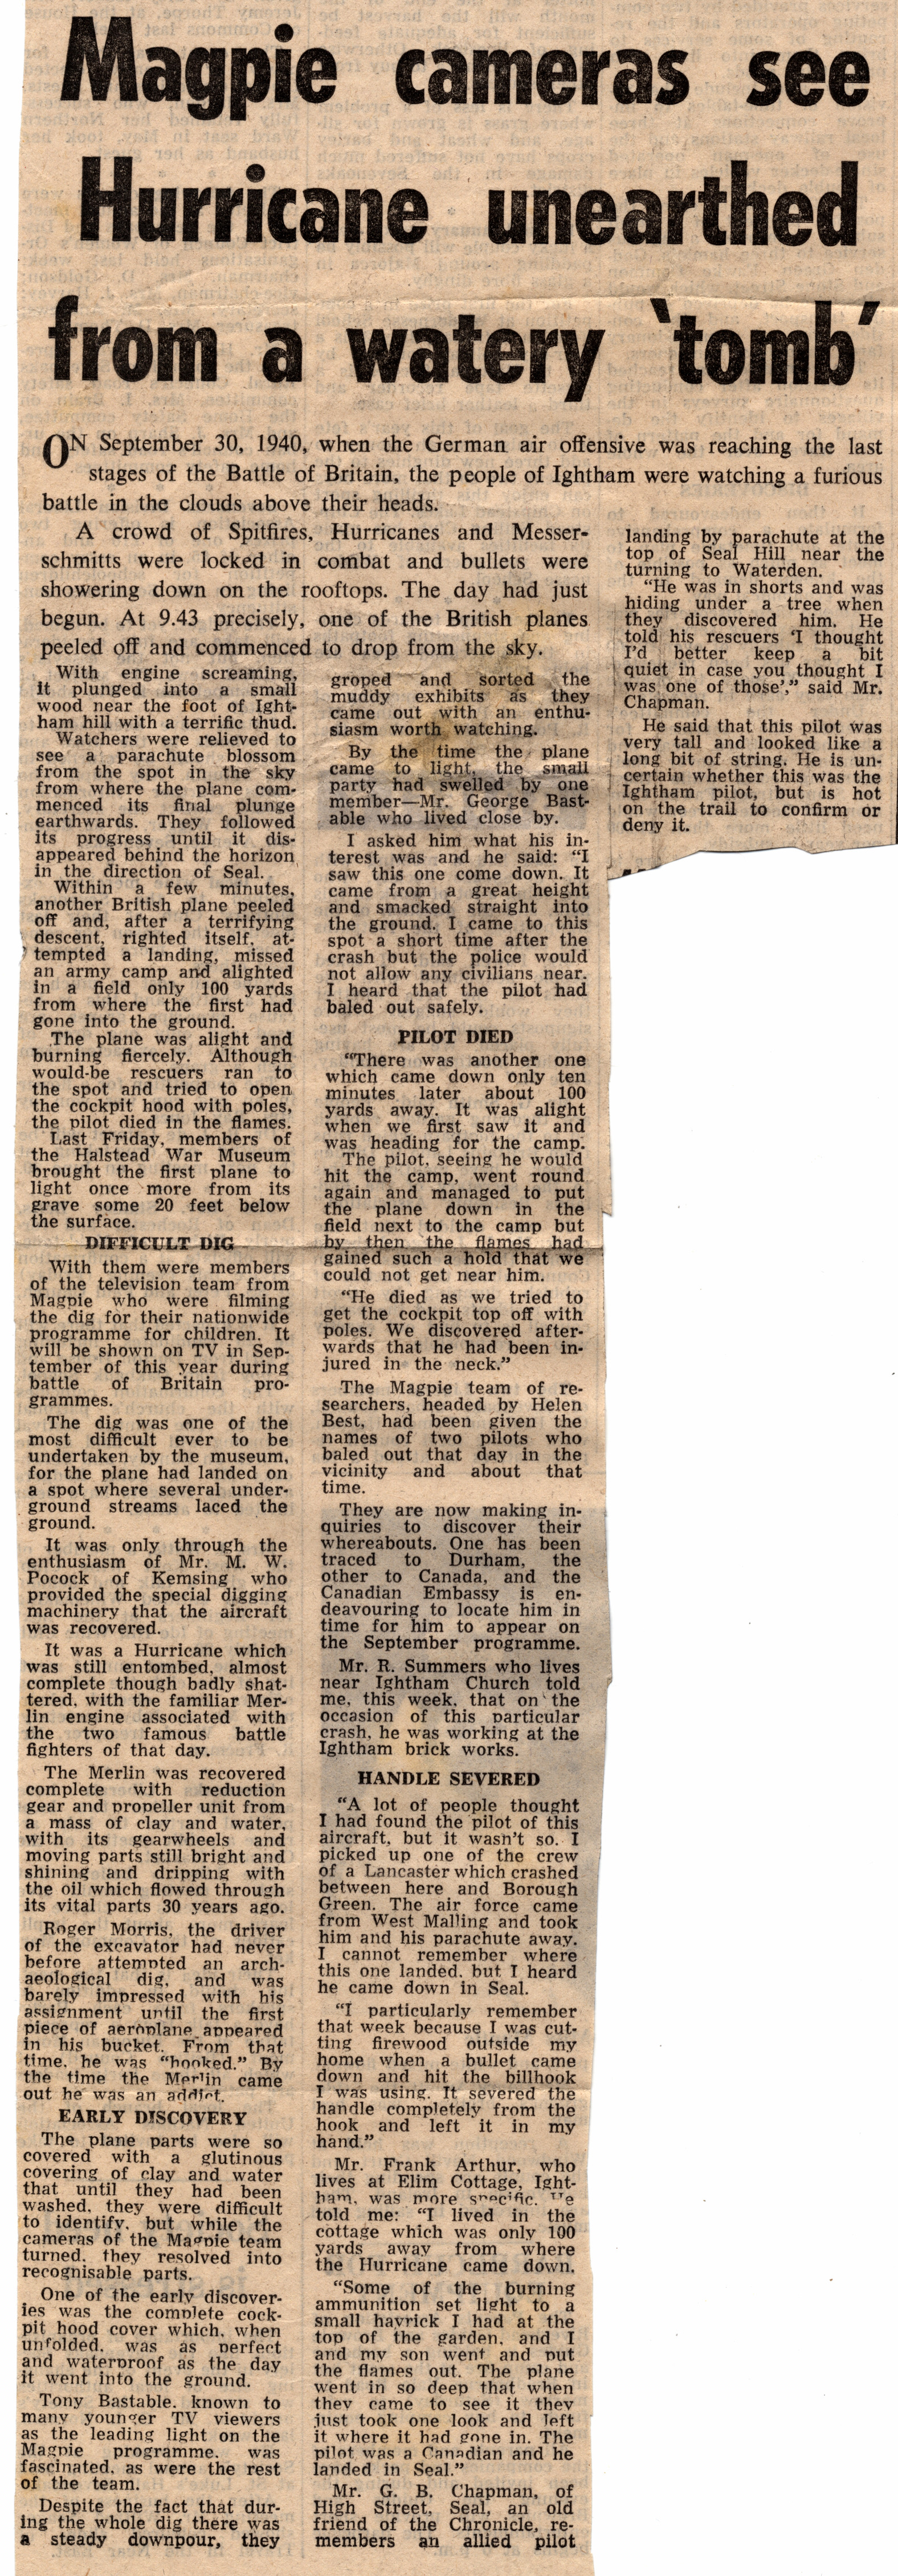 Sevenoaks Chronicle Article (June 1971)